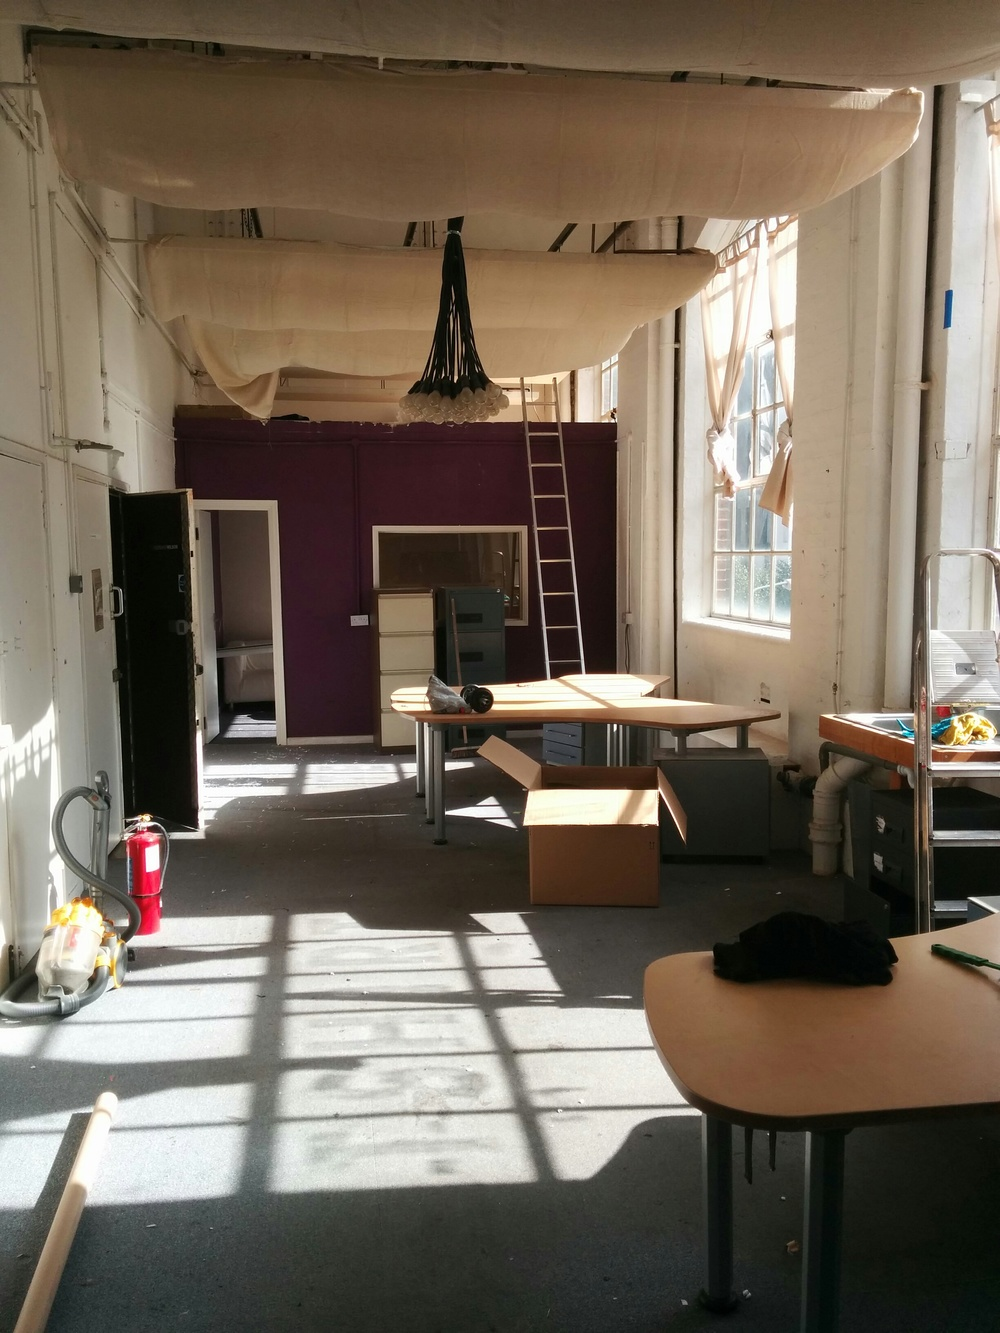 Photo of our old offices on the day we moved out for good. Bye Bye T-Shirt Print Shop, so long - it was good whilst it lasted.